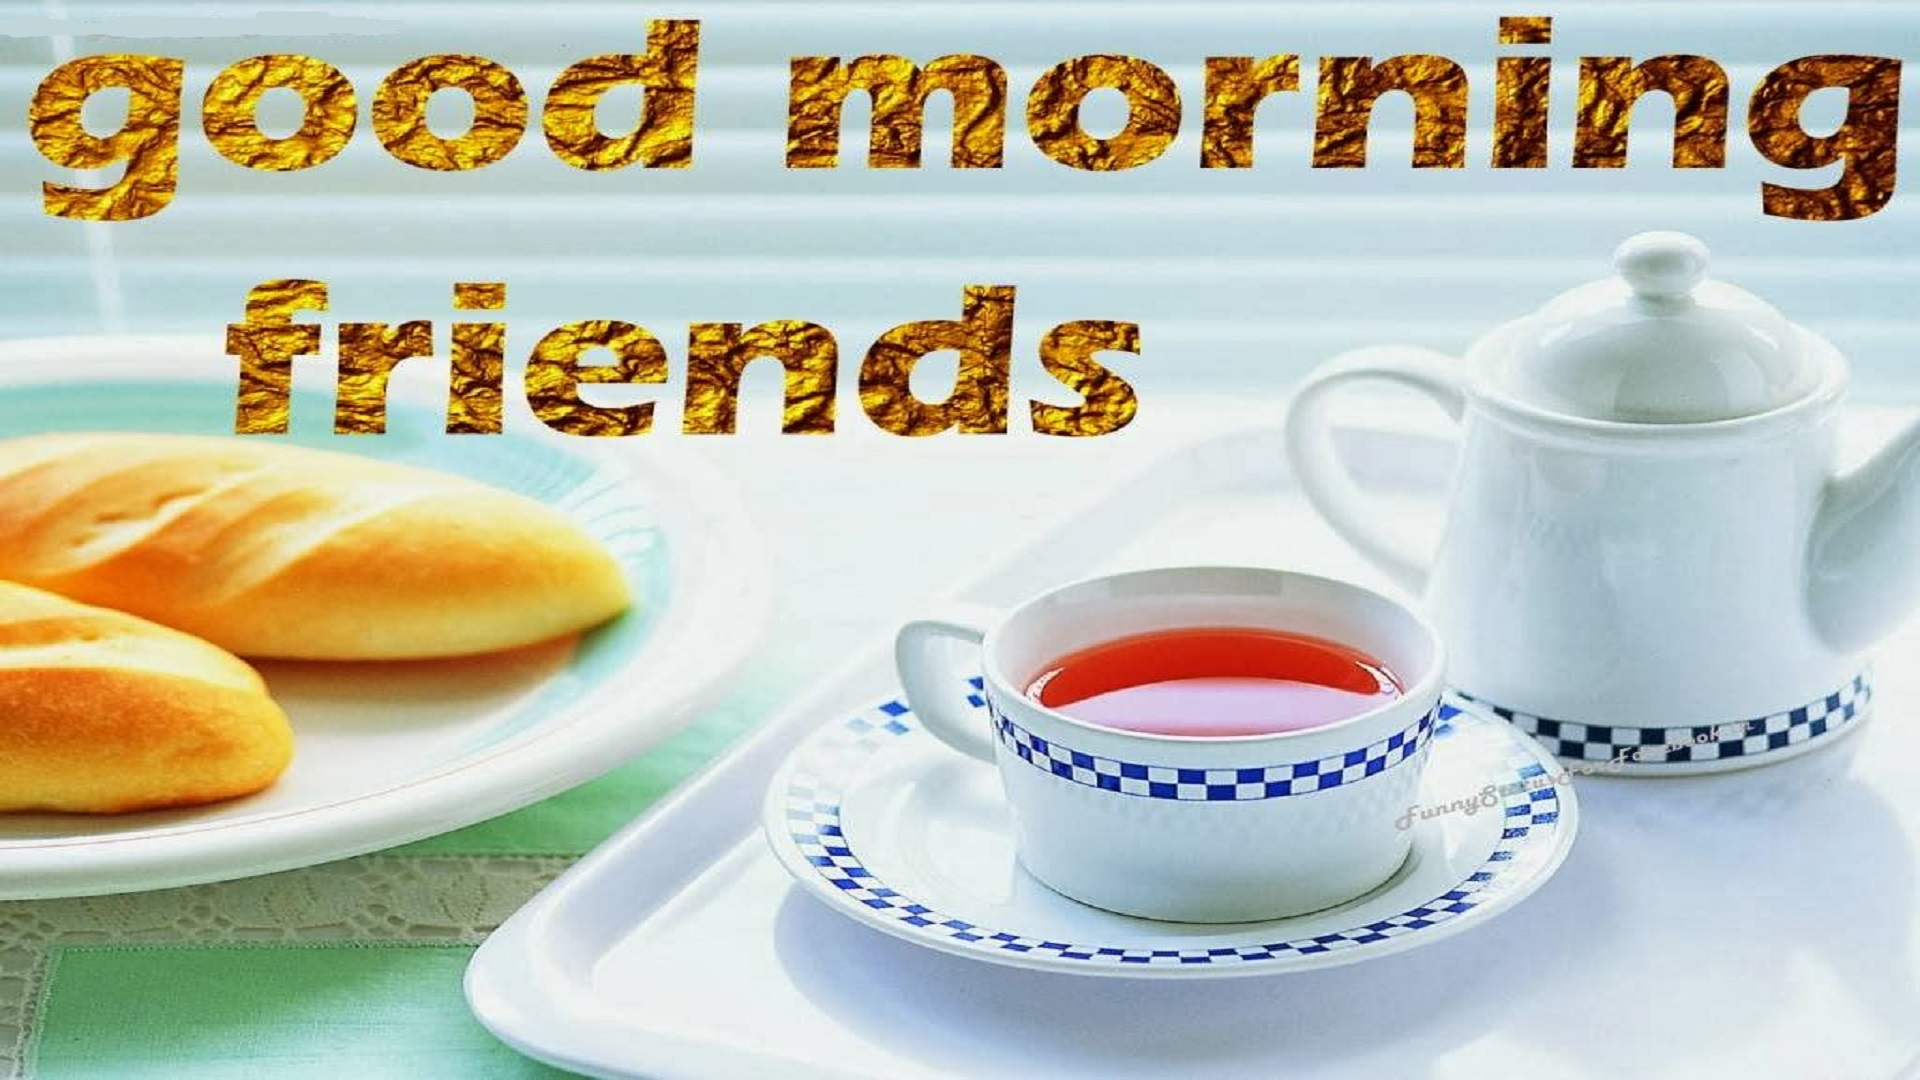 Wallpaper download good - Best Morning And Great Day Friends Hd Free